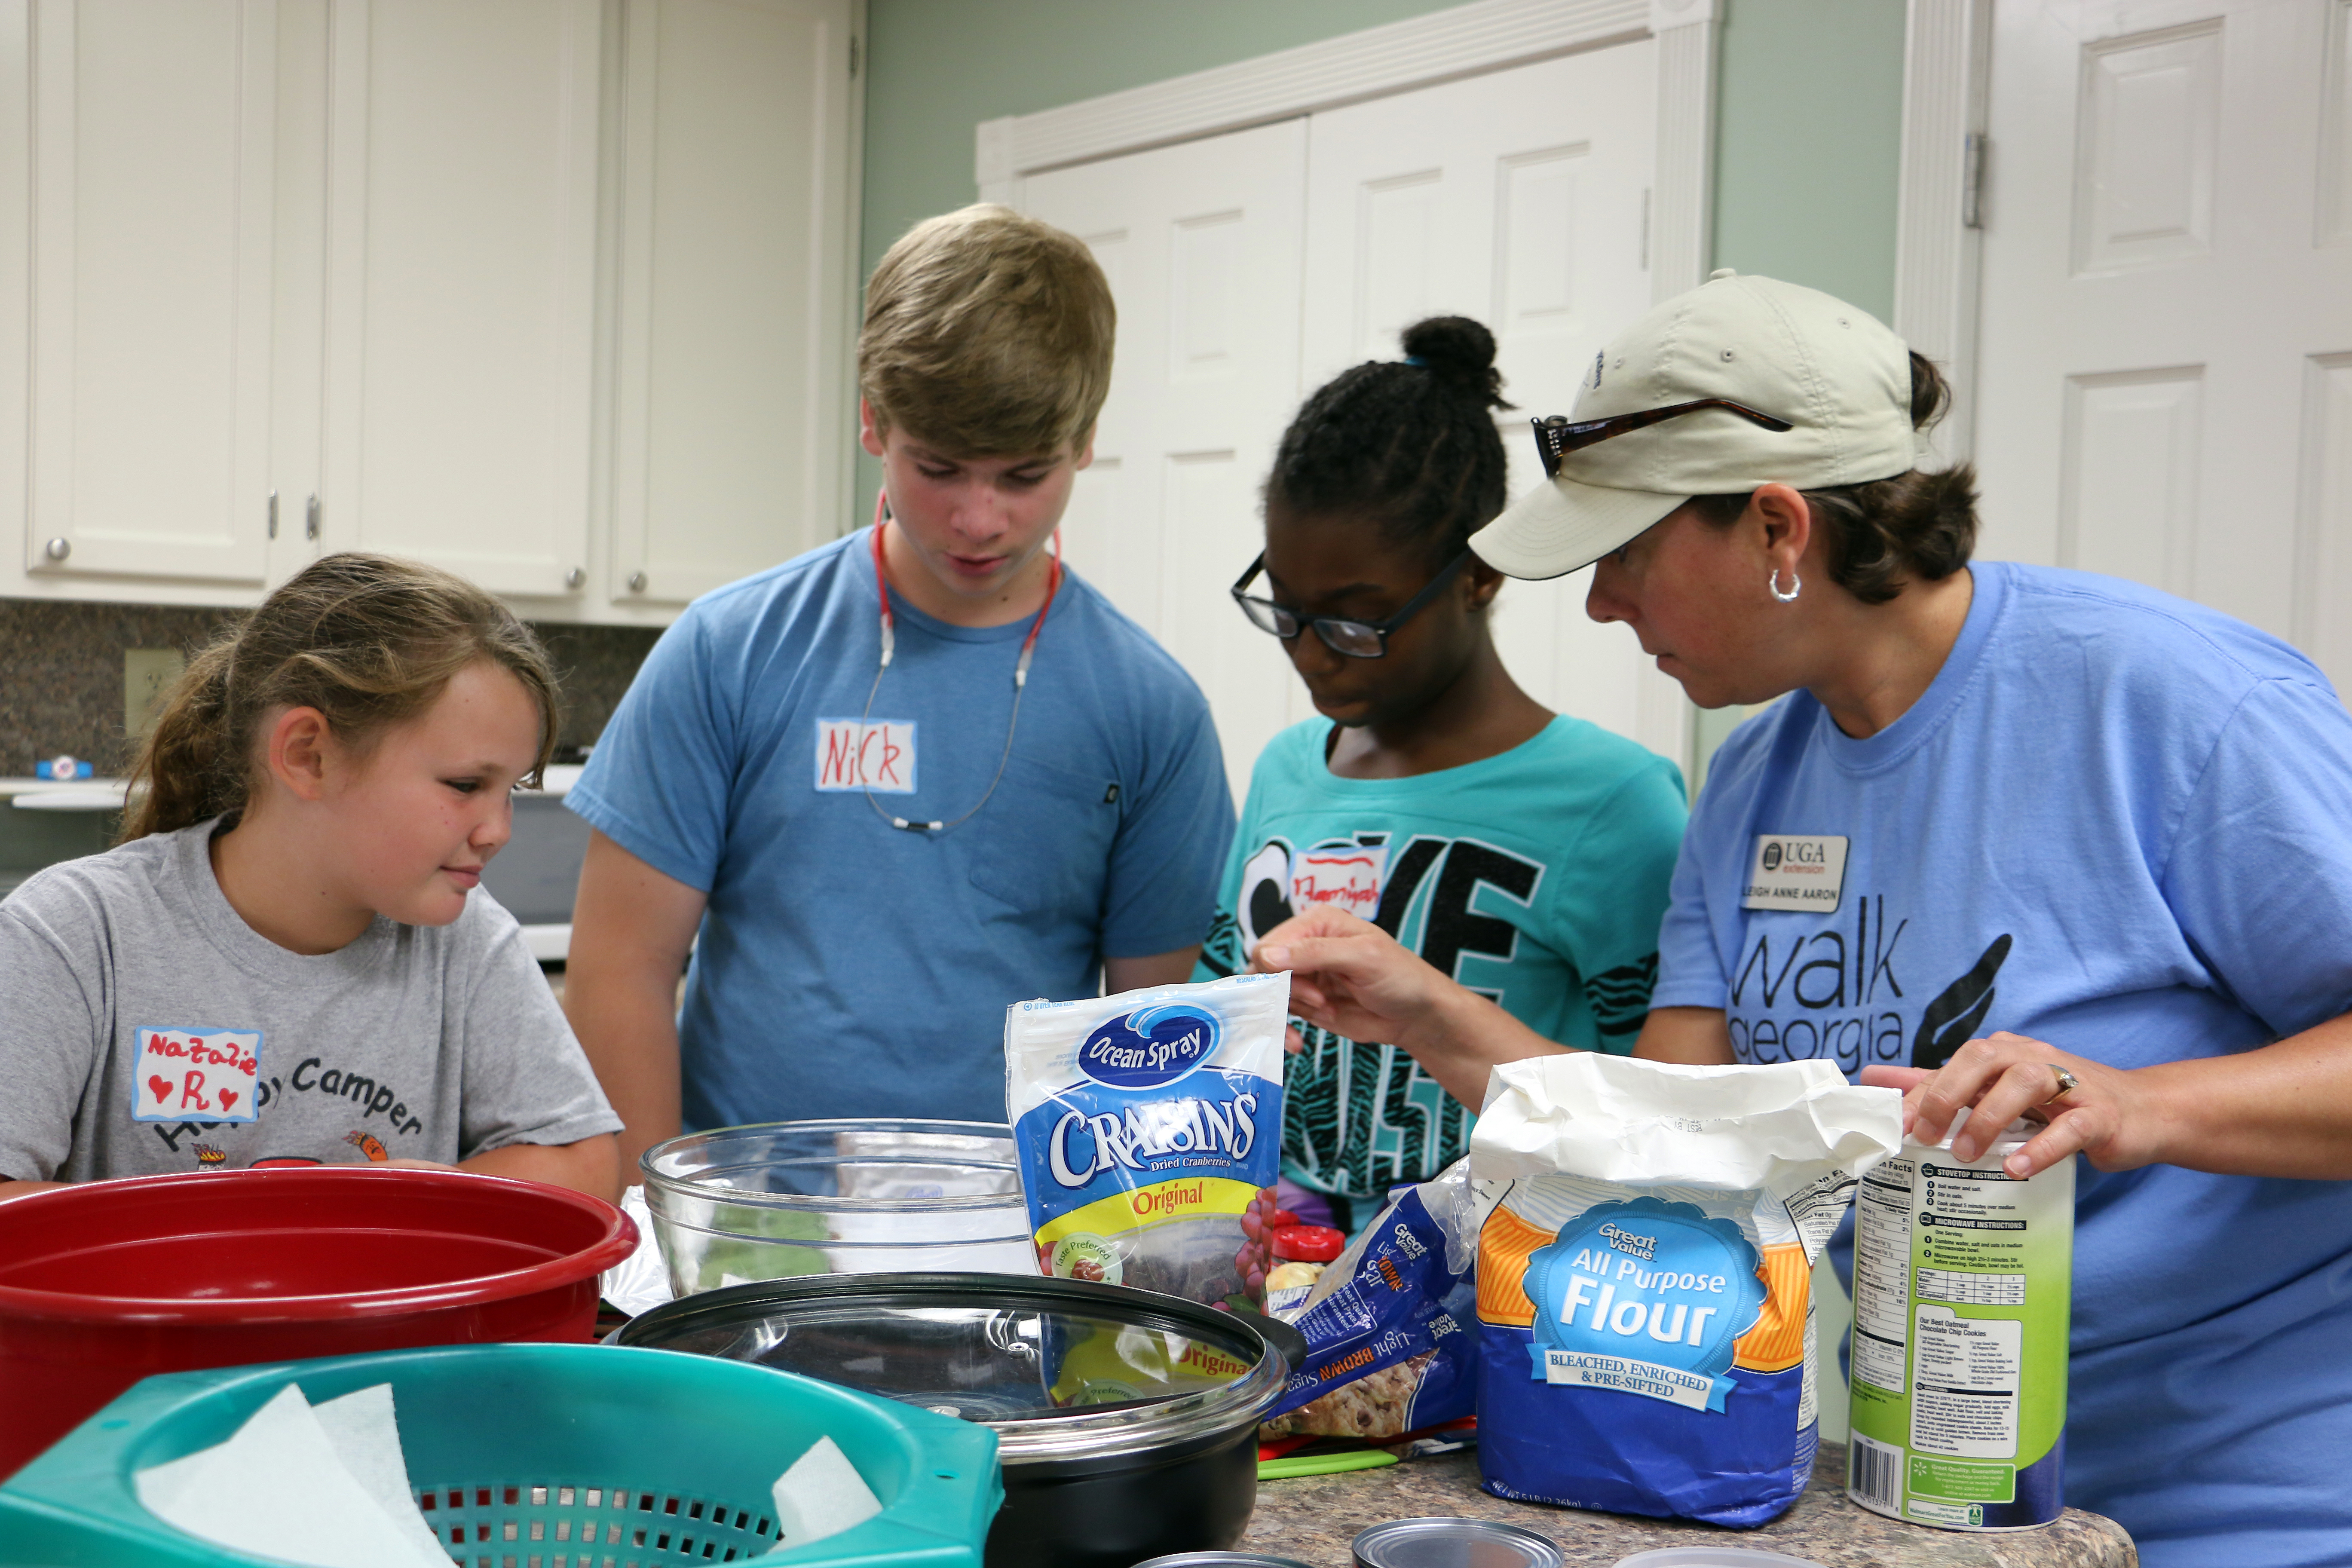 Morgan County 4-H'ers Natalie Ross, Nick Lewan and Aamiyah Jordan consult UGA Extension Family and Consumer Sciences Agent Leigh Anne Aaron about a recipe during the Morgan County Kids Can Cook camp held this summer.